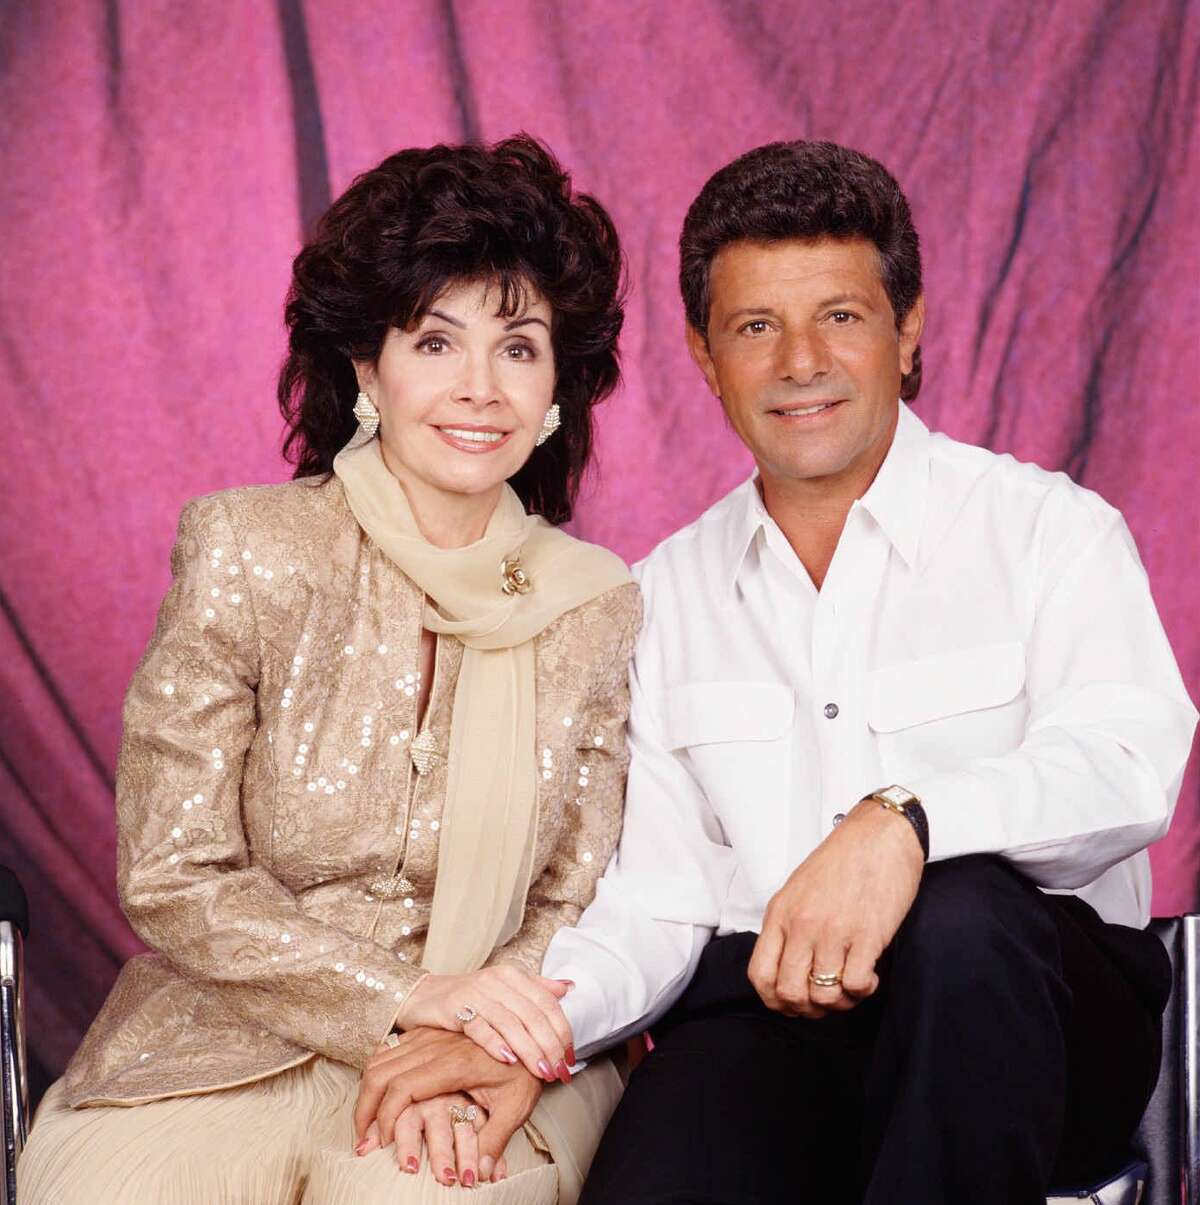 """Annette Funicello, America's sweetheart of the 1950s and '60s, and Frankie Avalon, a teen idol of that era, appear as themselves in """"A Dream is a wish your heart makes."""" on CBS."""